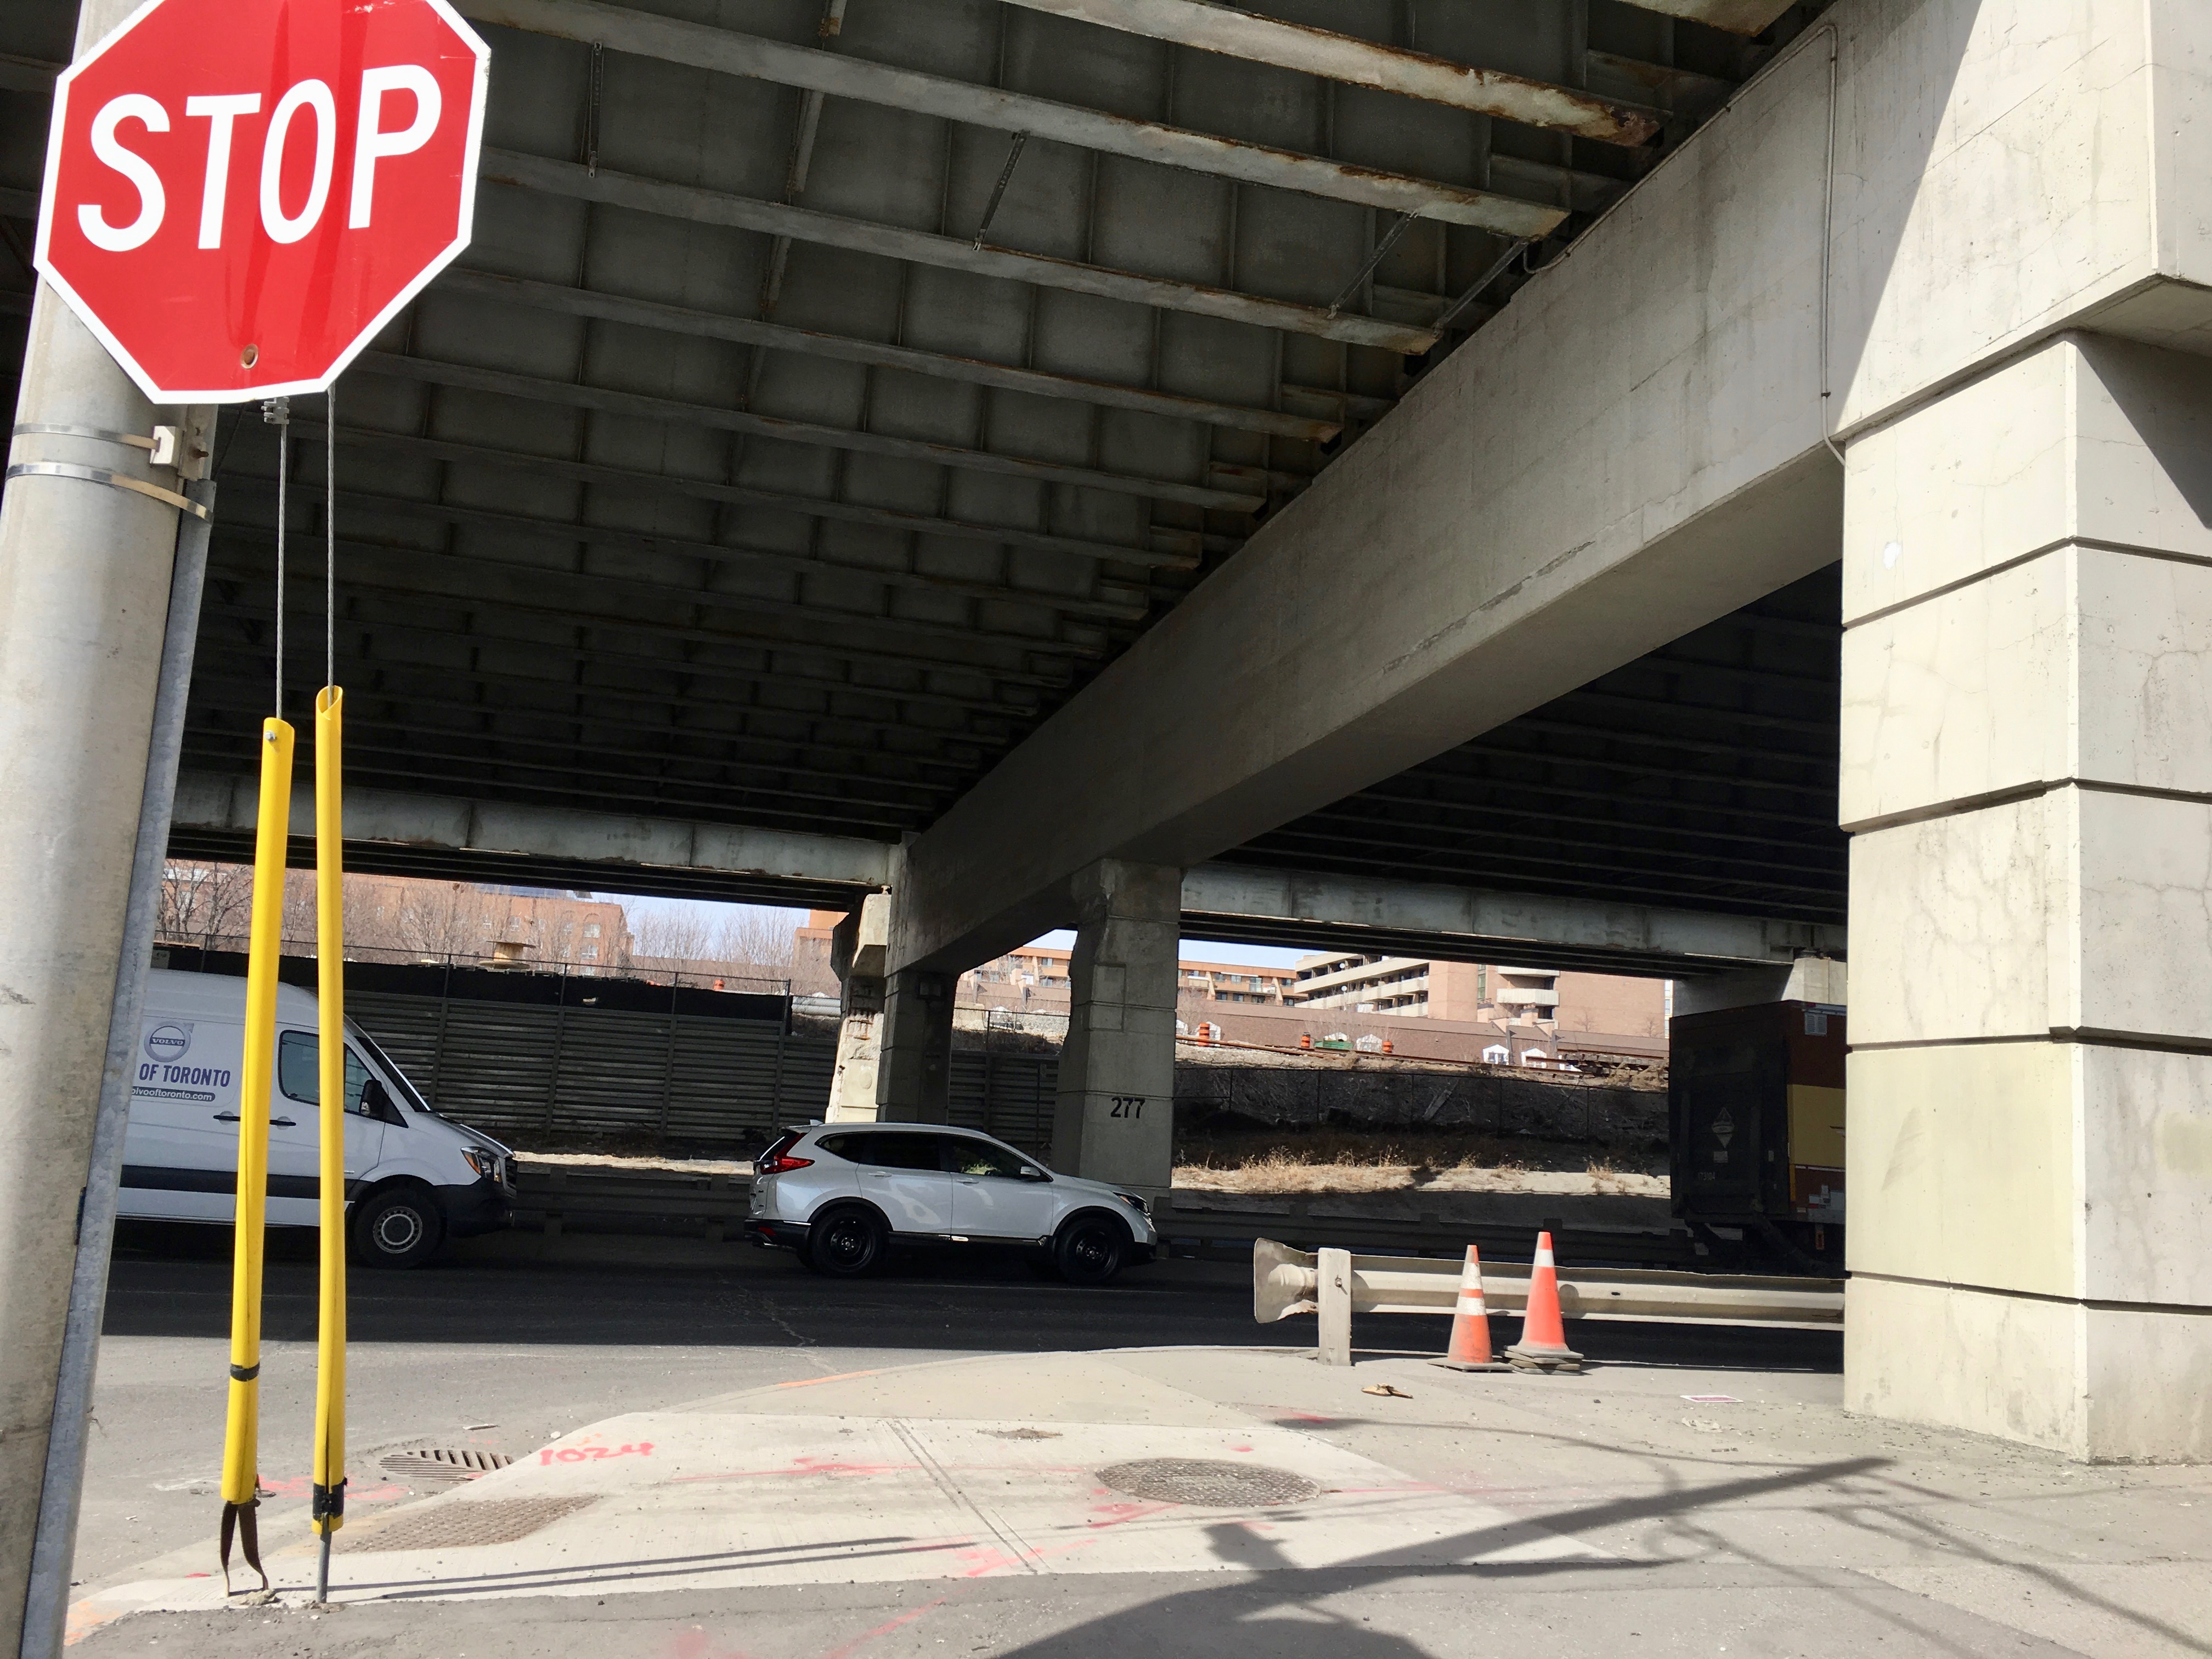 3:03 p.m. Mar 22, 2018. The view under the Gardiner Expressway near Parliament St. Mayoral candidate Jennifer Keesmaat announced on Sunday that if she is elected mayor she will advocate for a grand boulevard instead of an elevated highway.